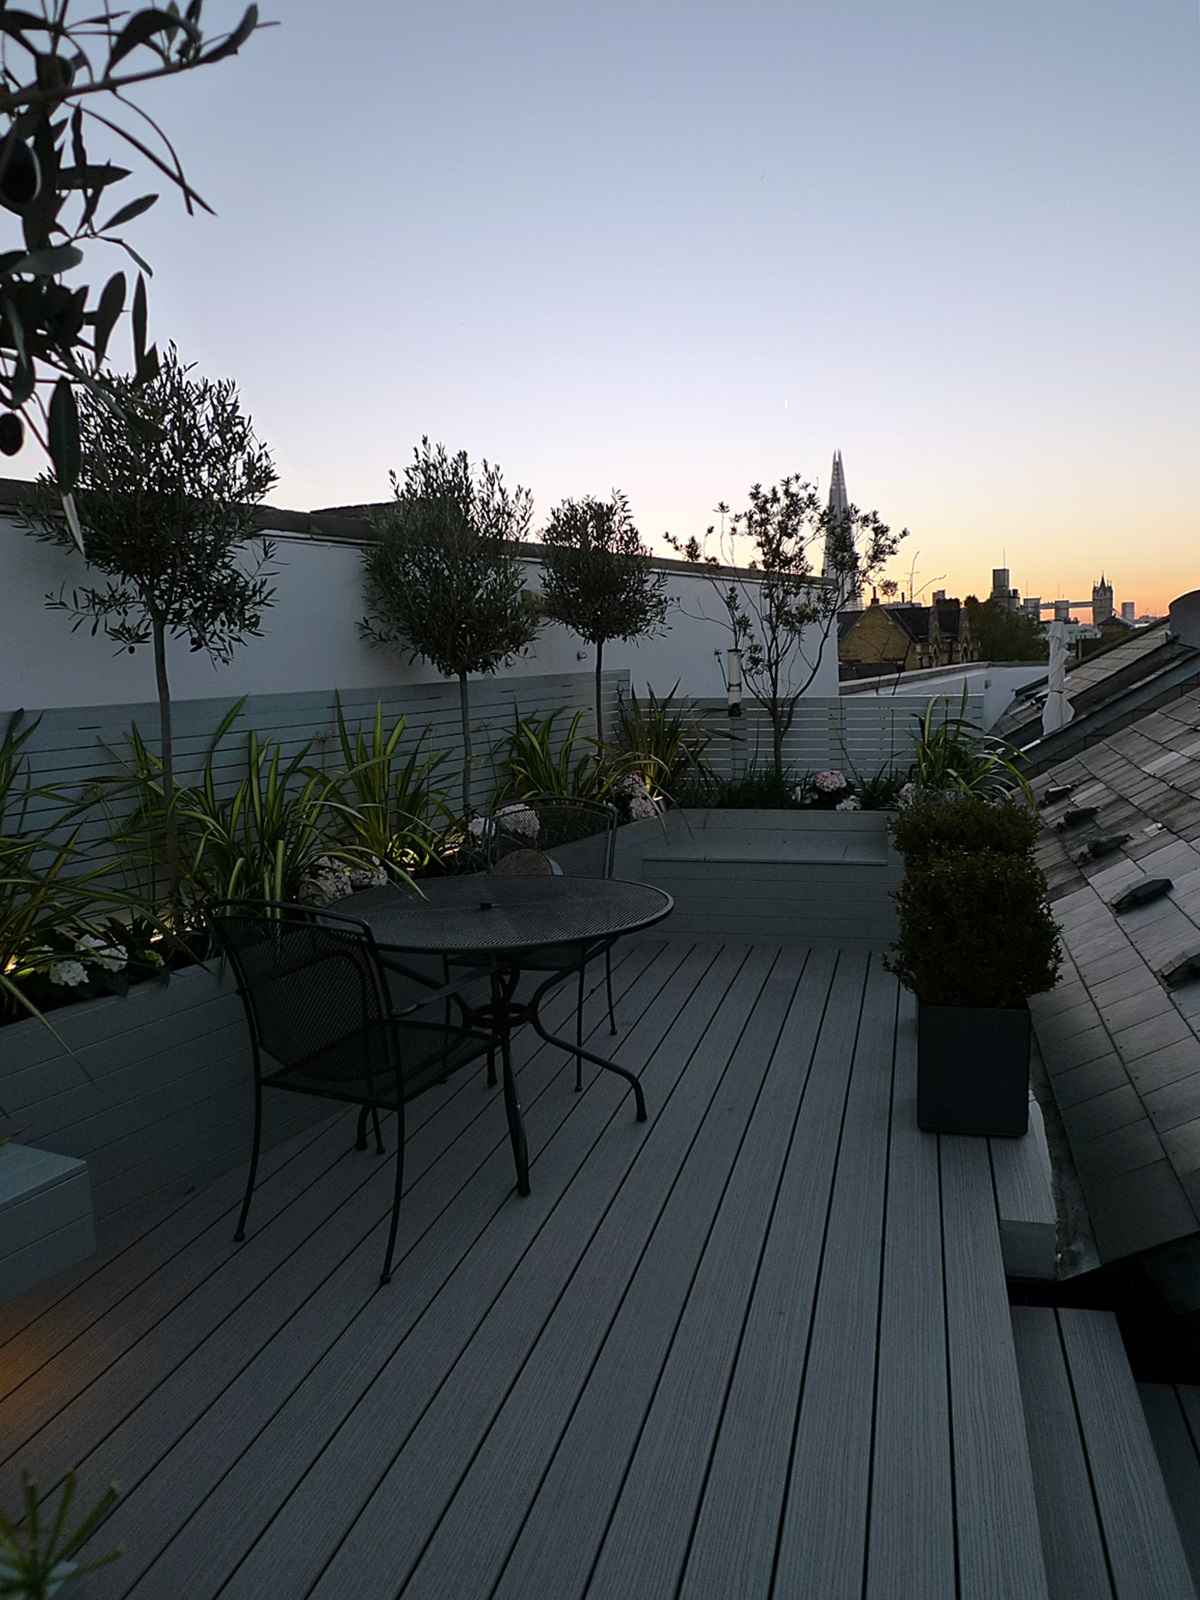 modern roof terrace garden fulham chelsea tower bridge docklands london